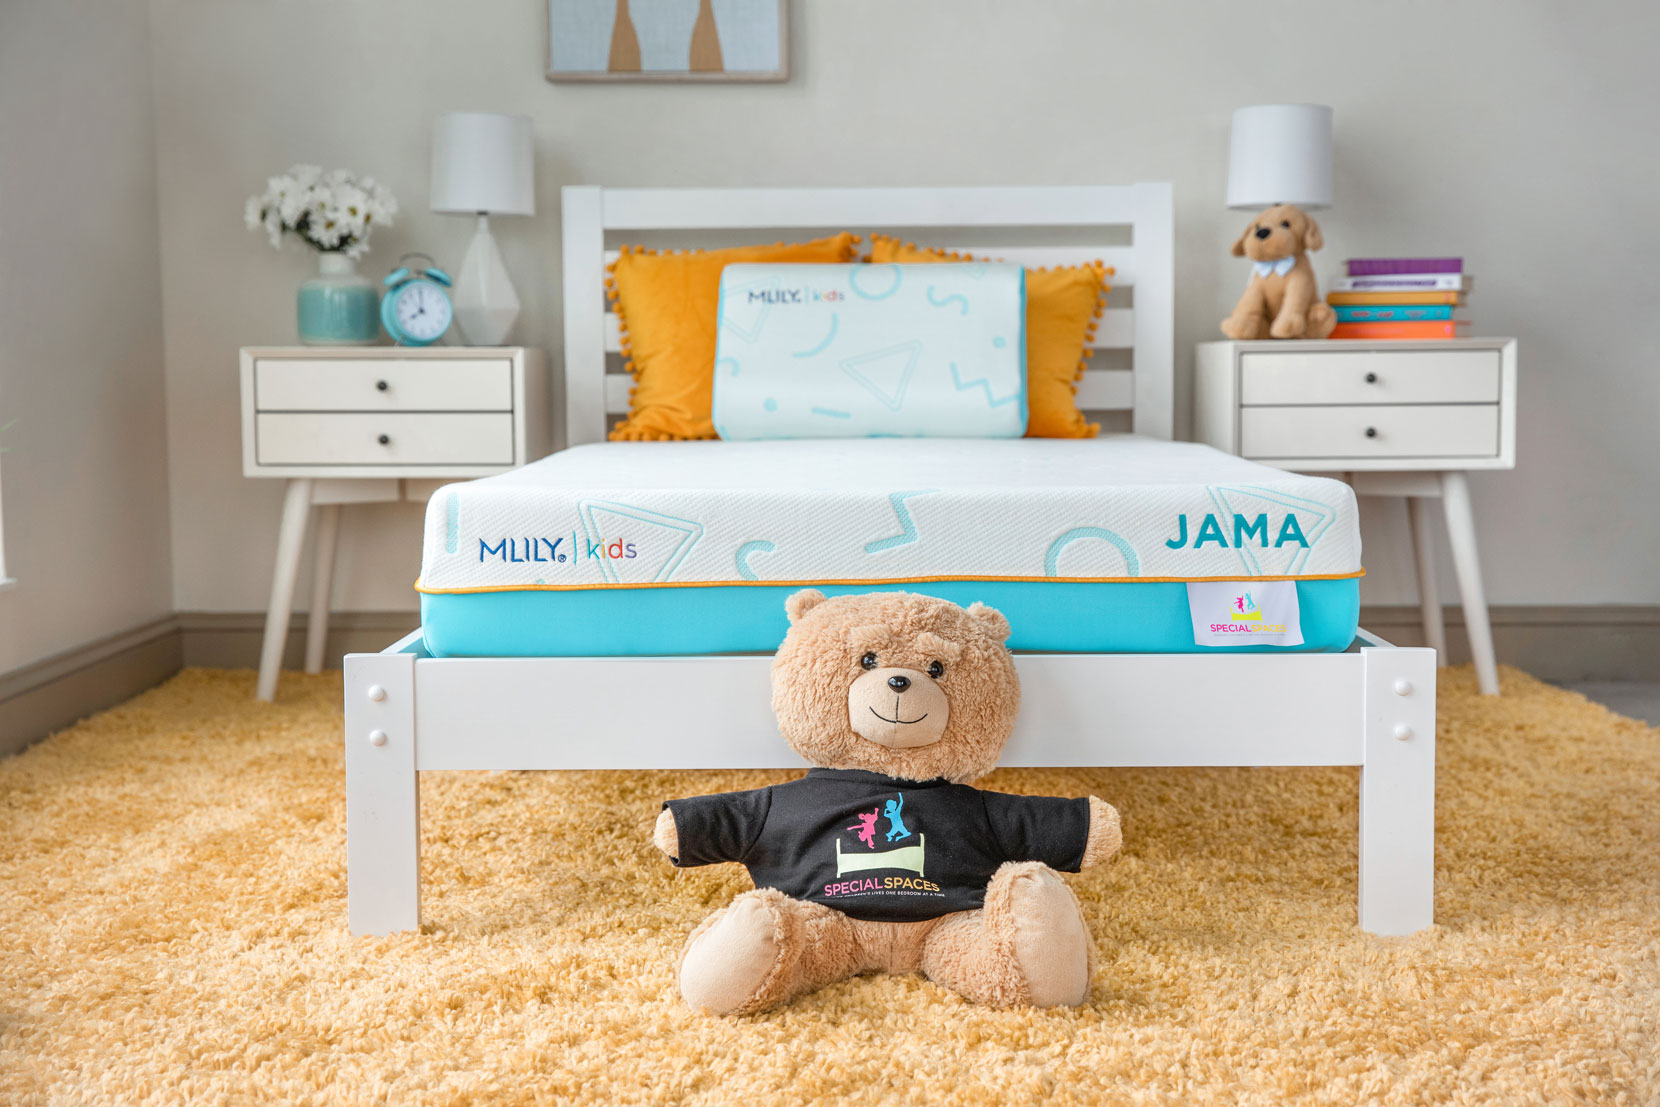 Kids' bedroom with MLILY JAMA mattress on a bed between two bedside tables with teddy bear at foot of bed.